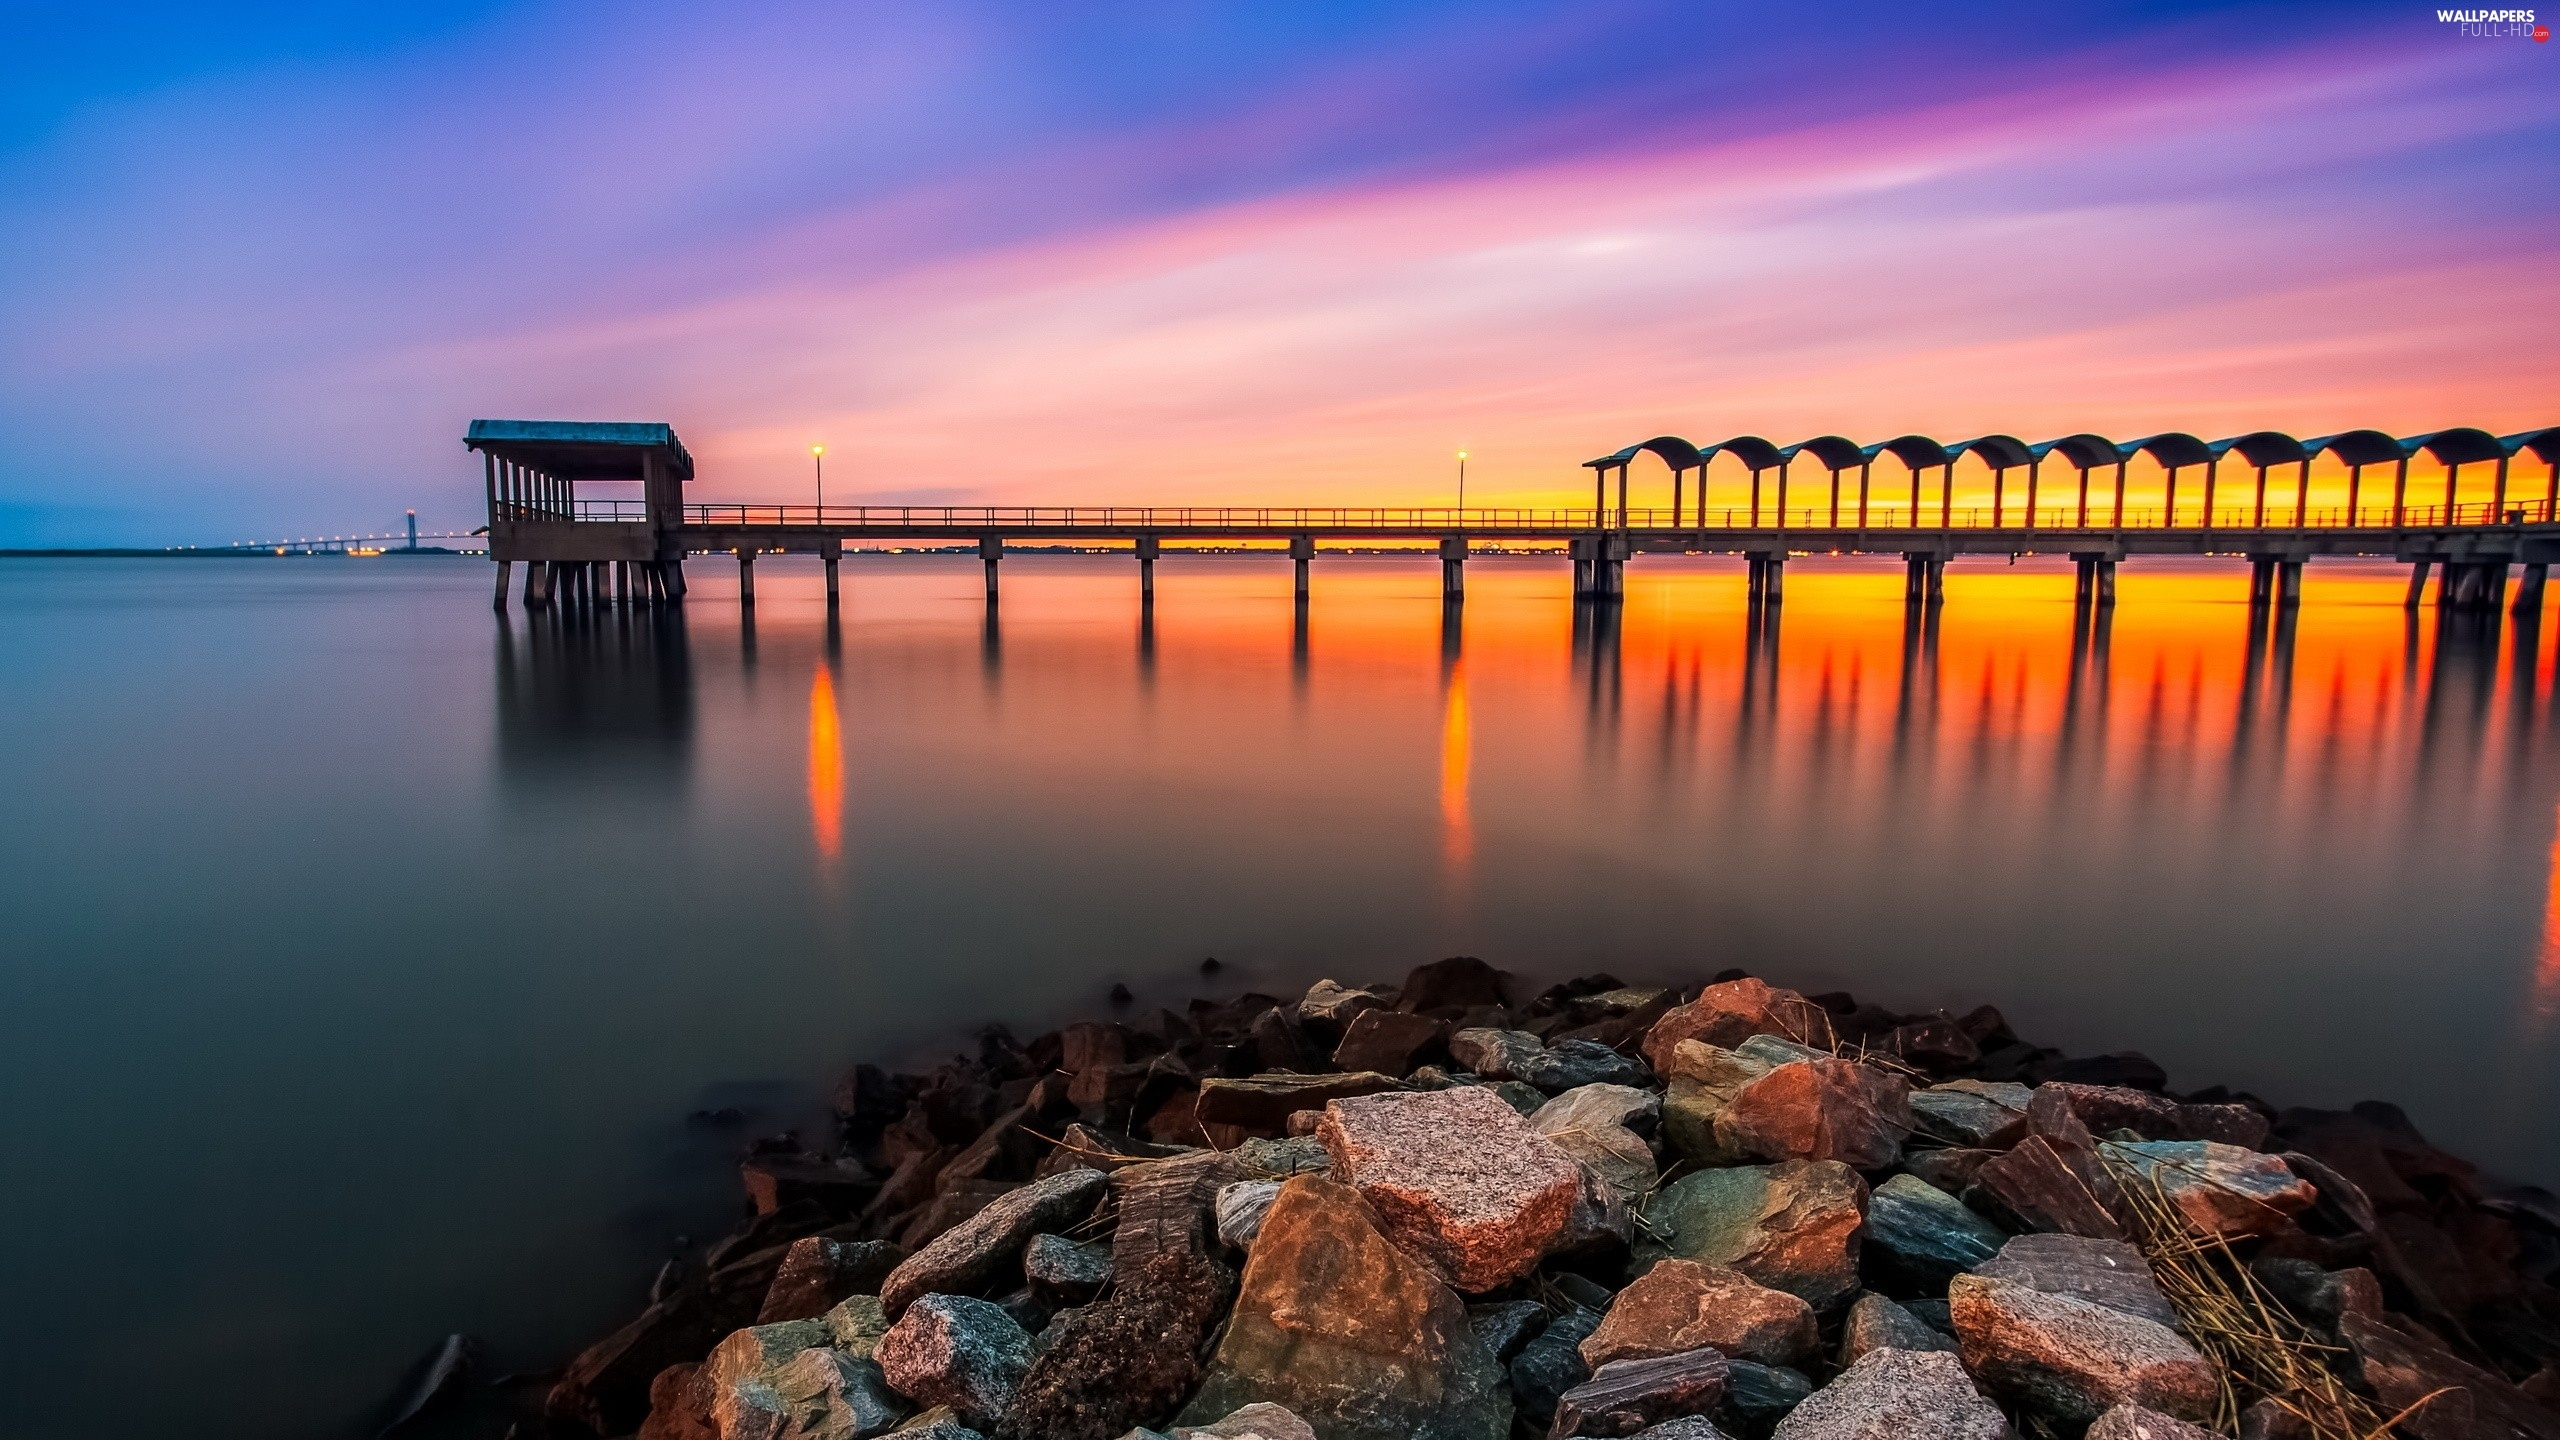 Great Sunsets, Stones, sea, pier